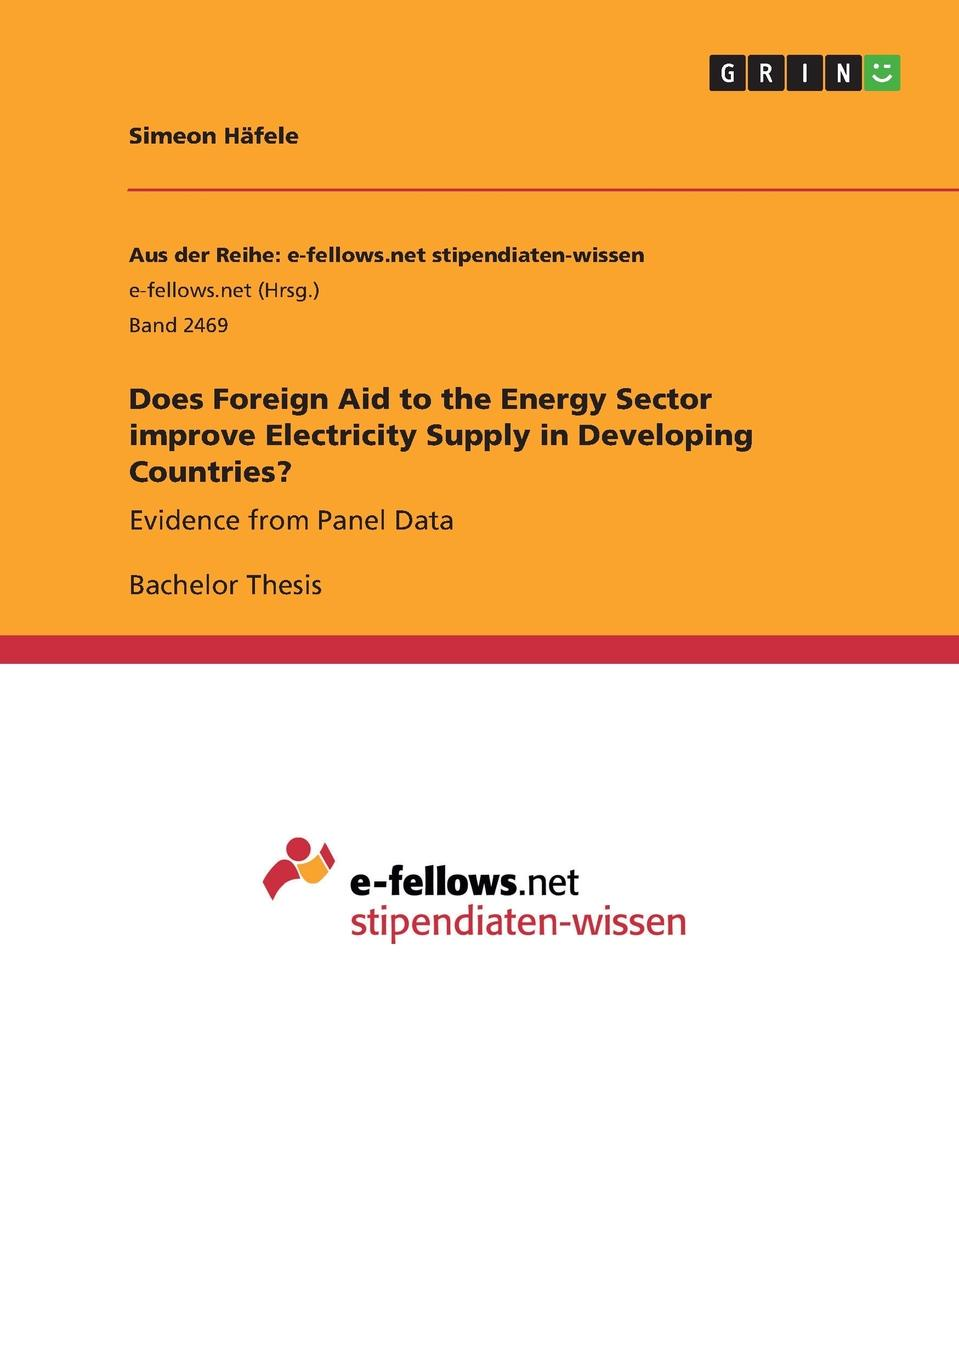 Simeon Häfele Does Foreign Aid to the Energy Sector improve Electricity Supply in Developing Countries. the rationale behind foreign aid